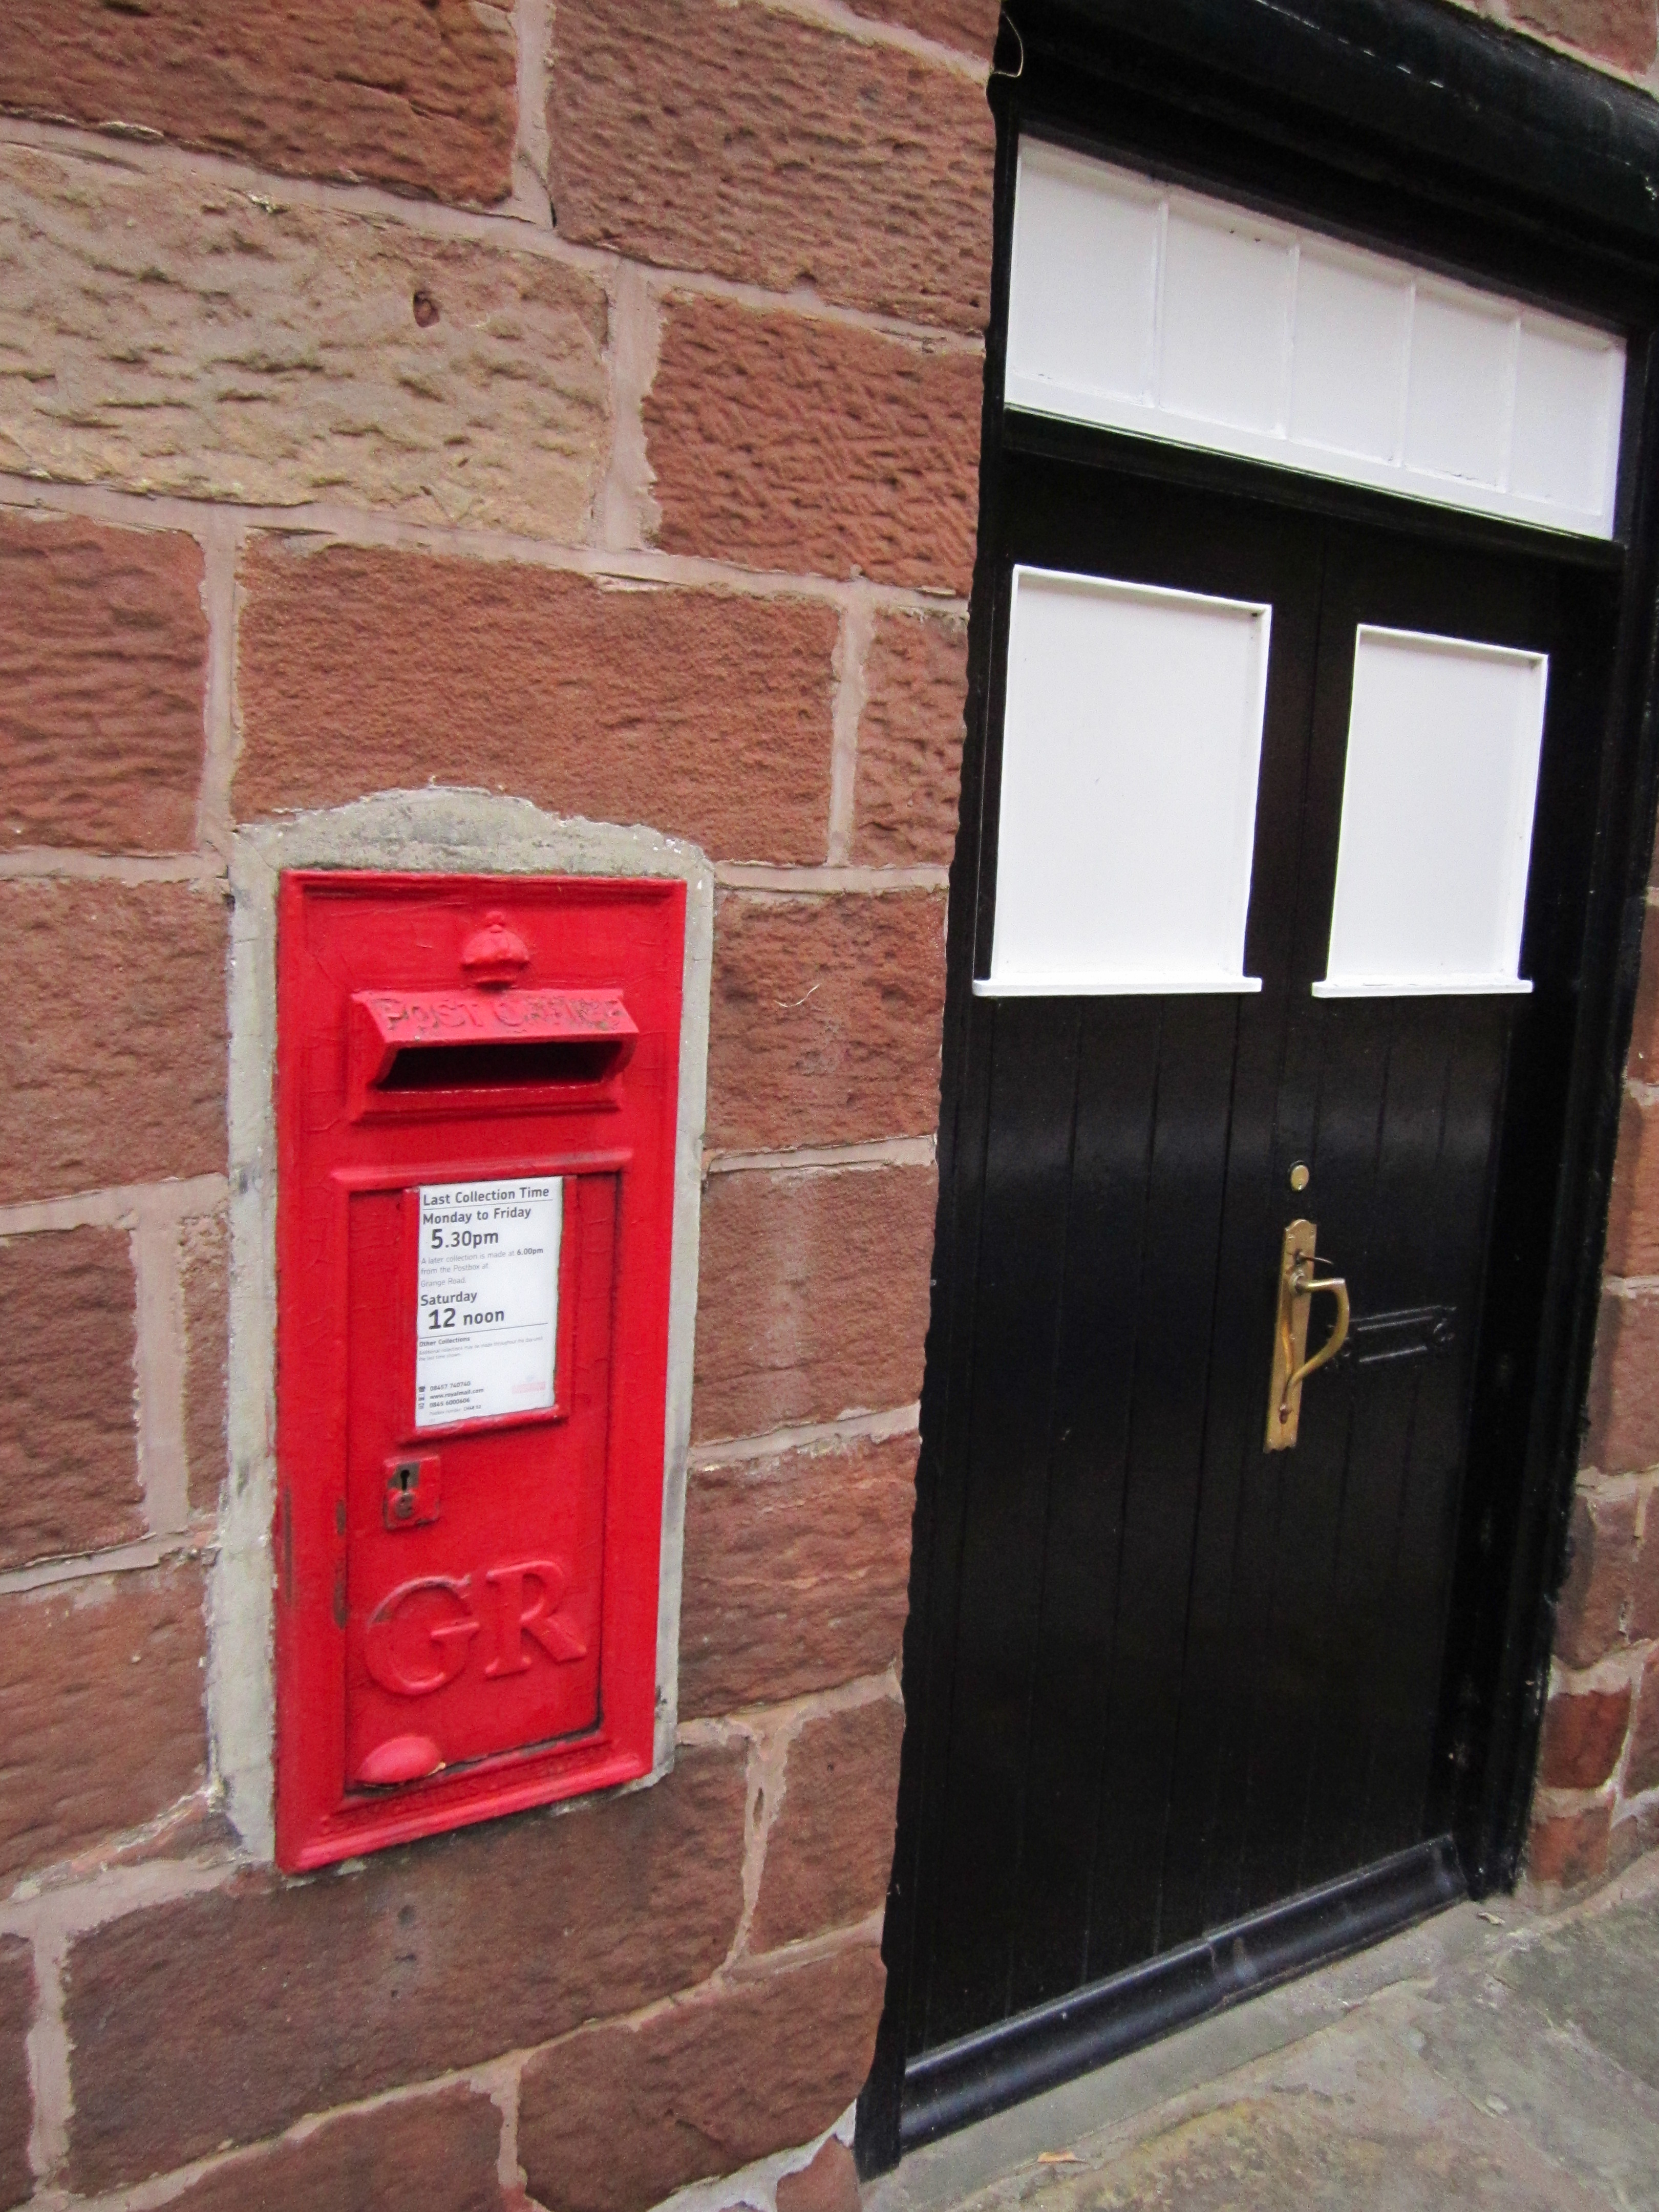 File:Postbox and front door, Caldy.JPG - Wikimedia Commons